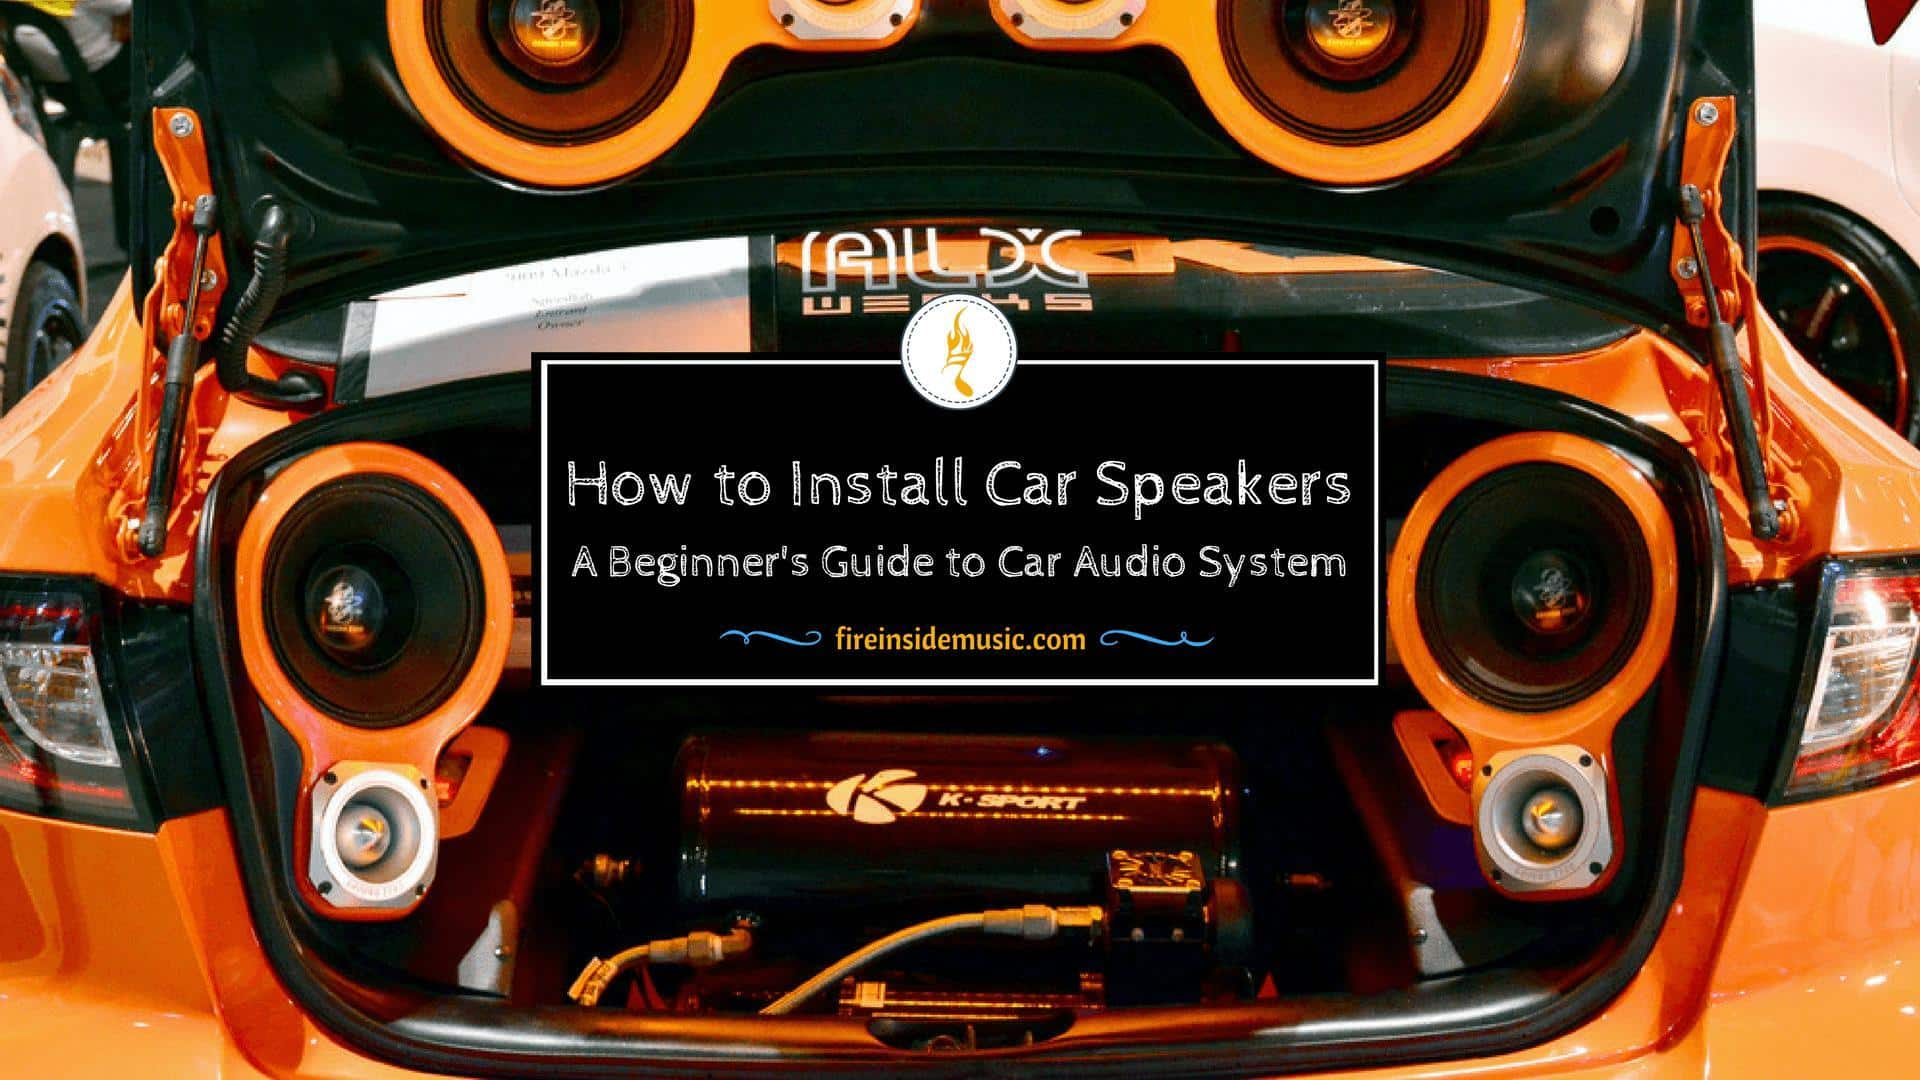 Wiring Car Audio System Trusted Diagram The Most Important Things About How To Install Speakers Alarm